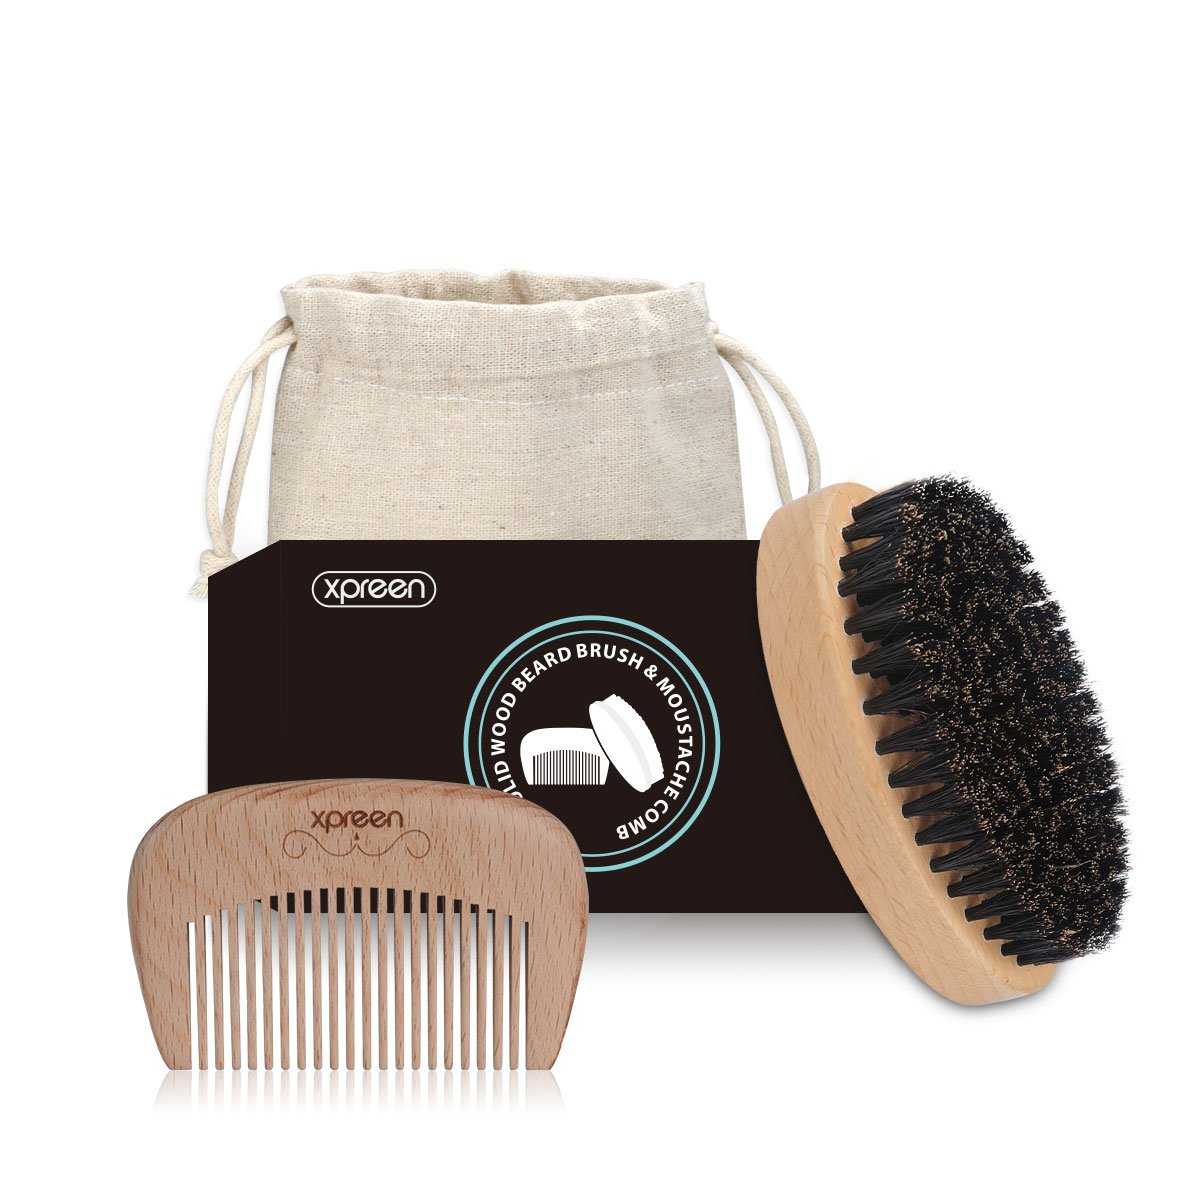 Xpreen Beard Oval Brush and Beard Comb Set with Carrying Case, Premium Handmade Wooden Comb and 100% Natural Boar Bristle Brush for Men Beard & Mustache Care